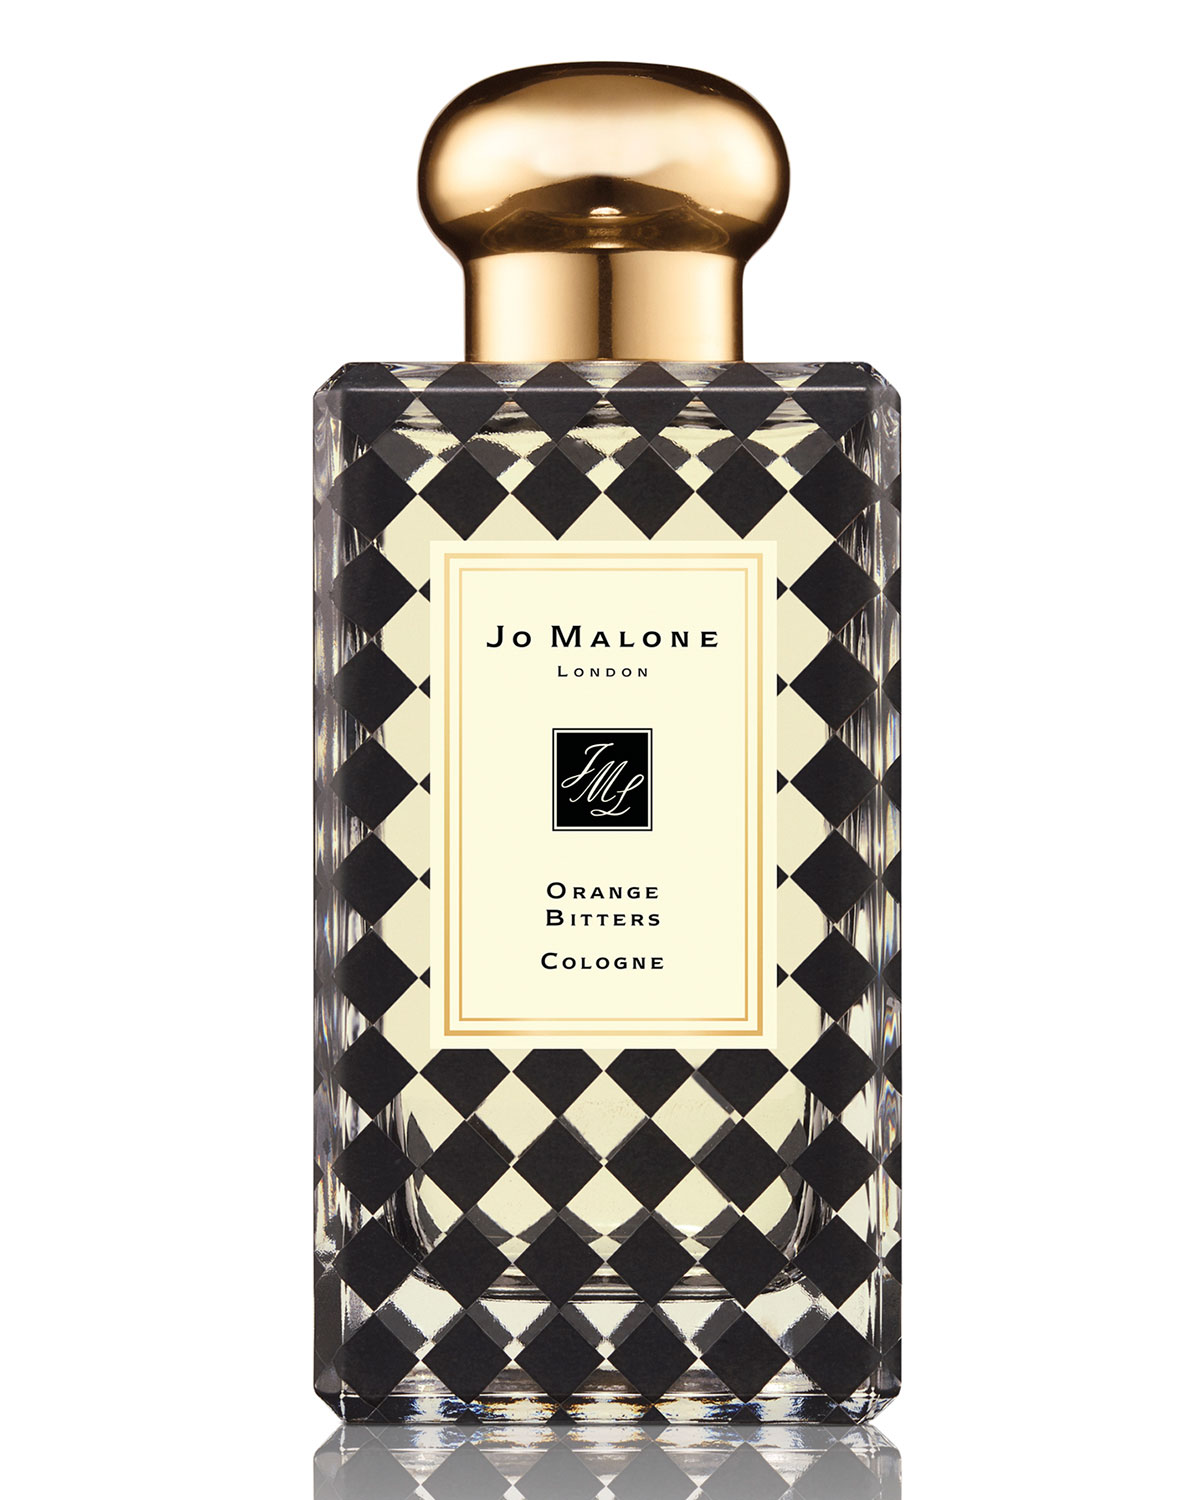 malone men I have samples of oud & bergamot on the way, and i look forward to trying those i recall smelling wood sage & sea salt on paper, and that was solid.